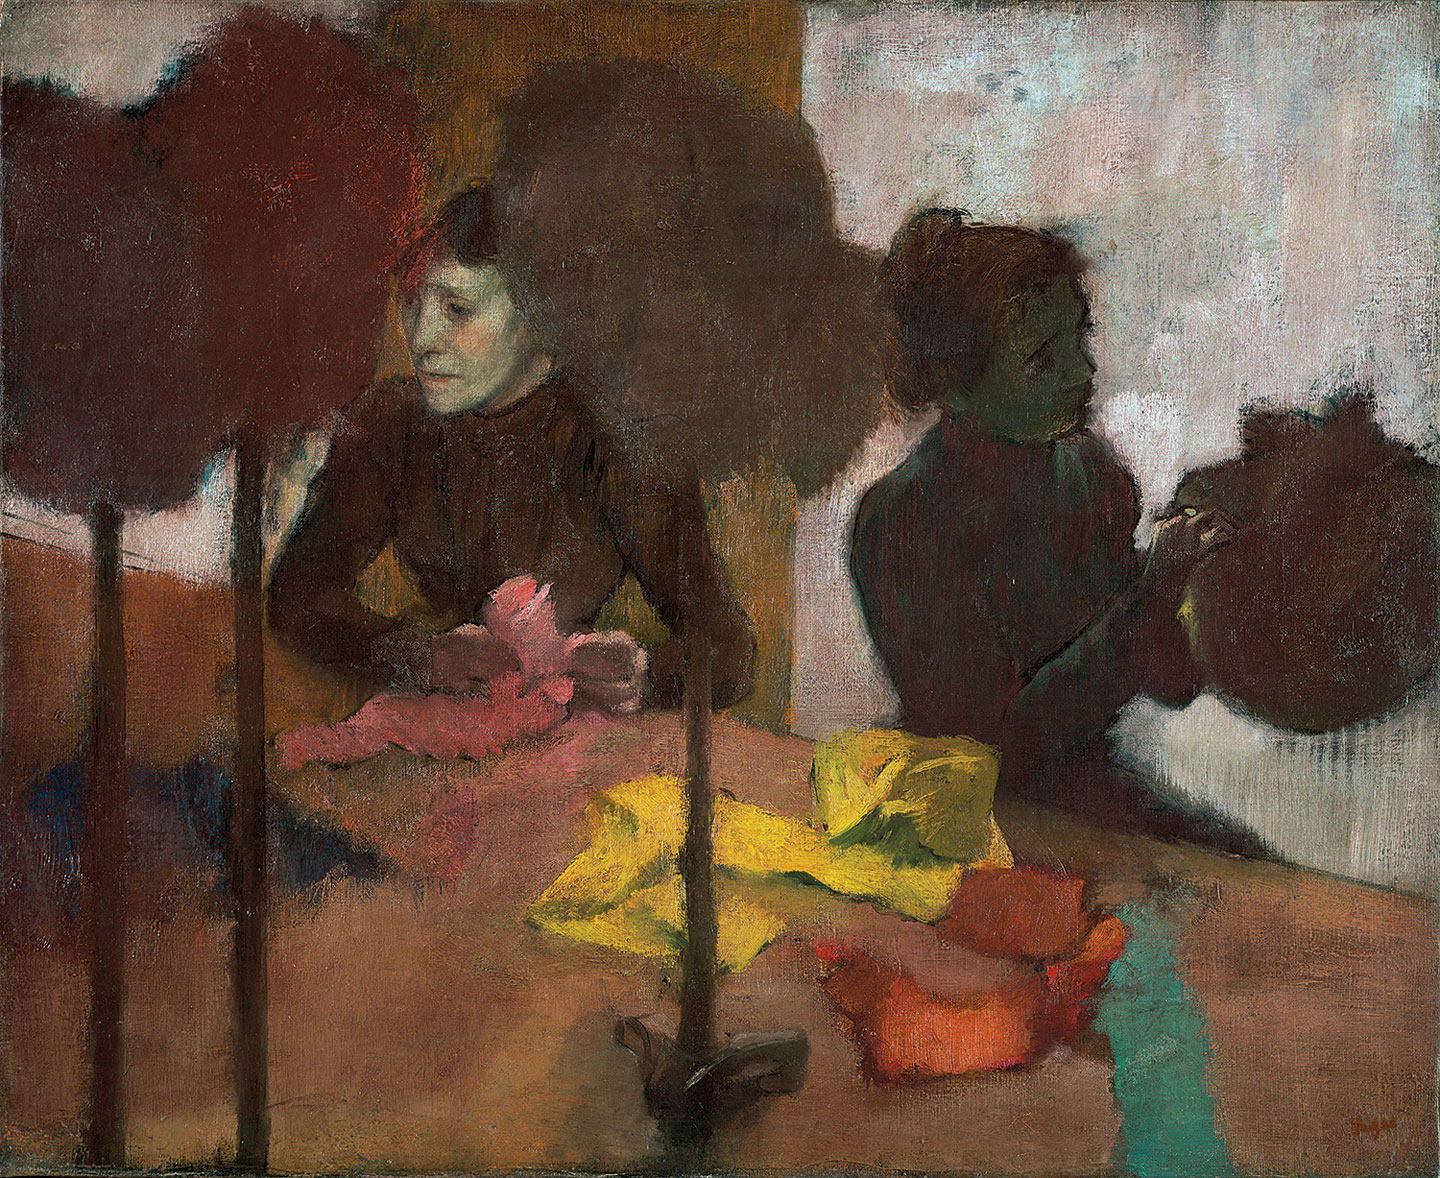 THE MILLINERS by Edgar Degas, oil on canvas, 59.1 × 72.4 centimeters, circa 1882-1905.  Courtesy of The J. Paul Getty Museum .